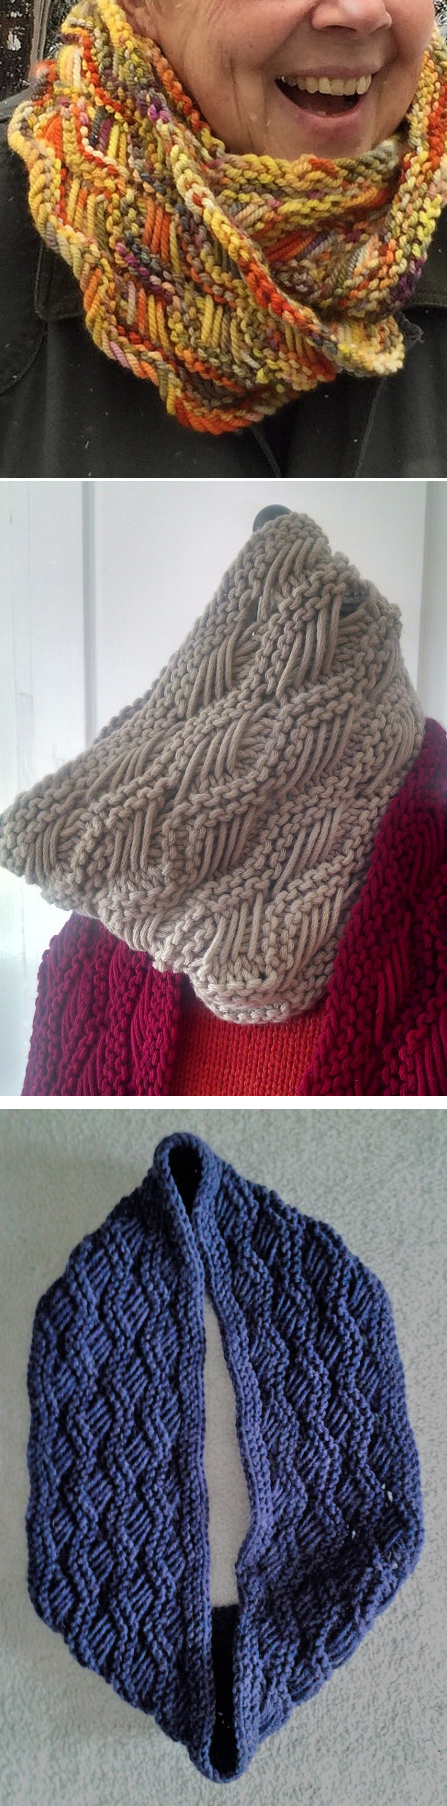 Free Knitting Pattern for Lattice Cowl - Ridges of alternating ...